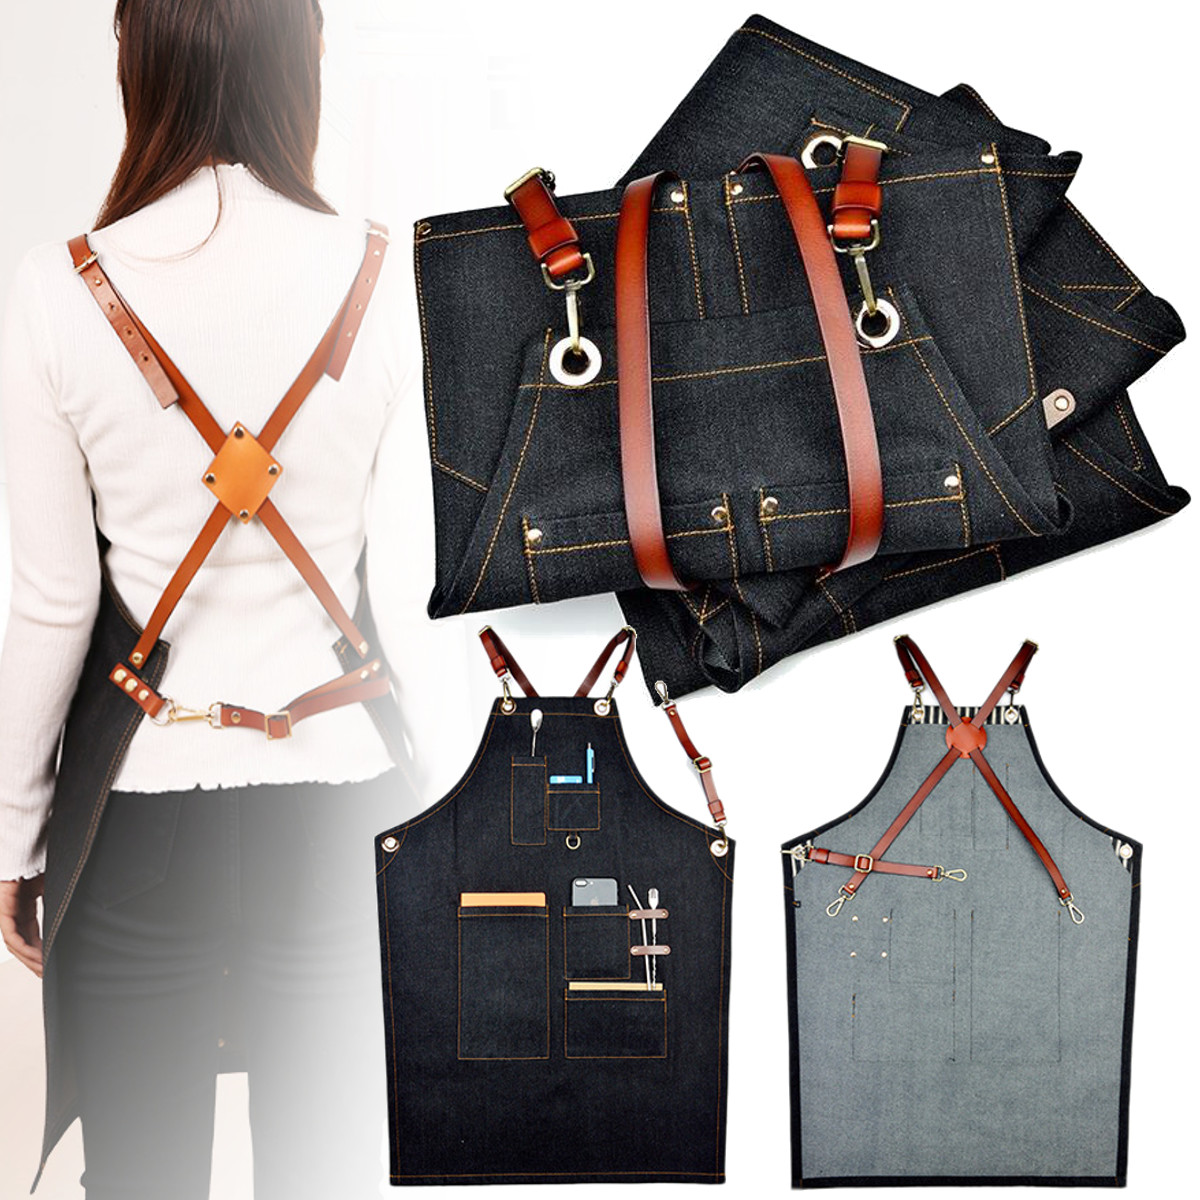 4 Styles Denim Bib Apron Leather Strap Hairtician Barista Work Hairdressing Robes